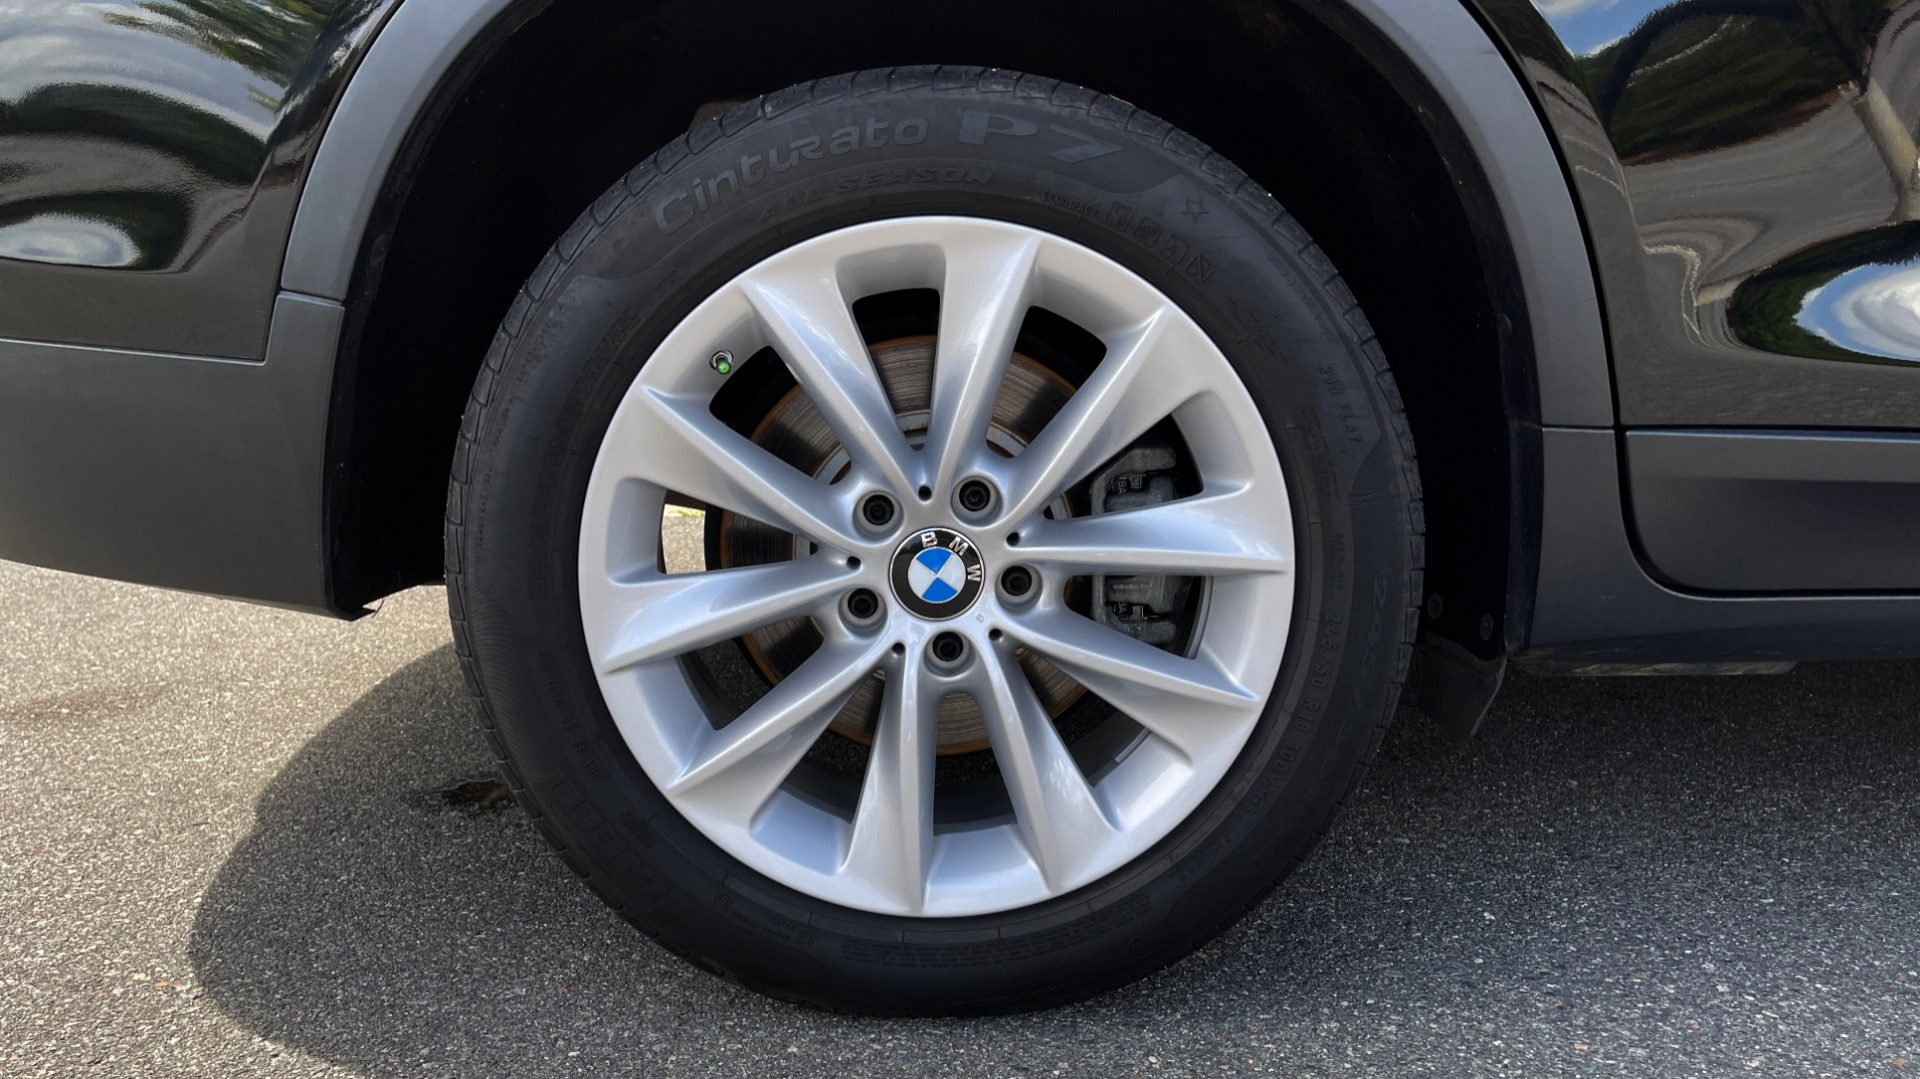 Used 2017 BMW X3 SDRIVE28I / DRVR ASST PKG / HTD STS / REARVIEW / 18IN WHEELS for sale $24,995 at Formula Imports in Charlotte NC 28227 78